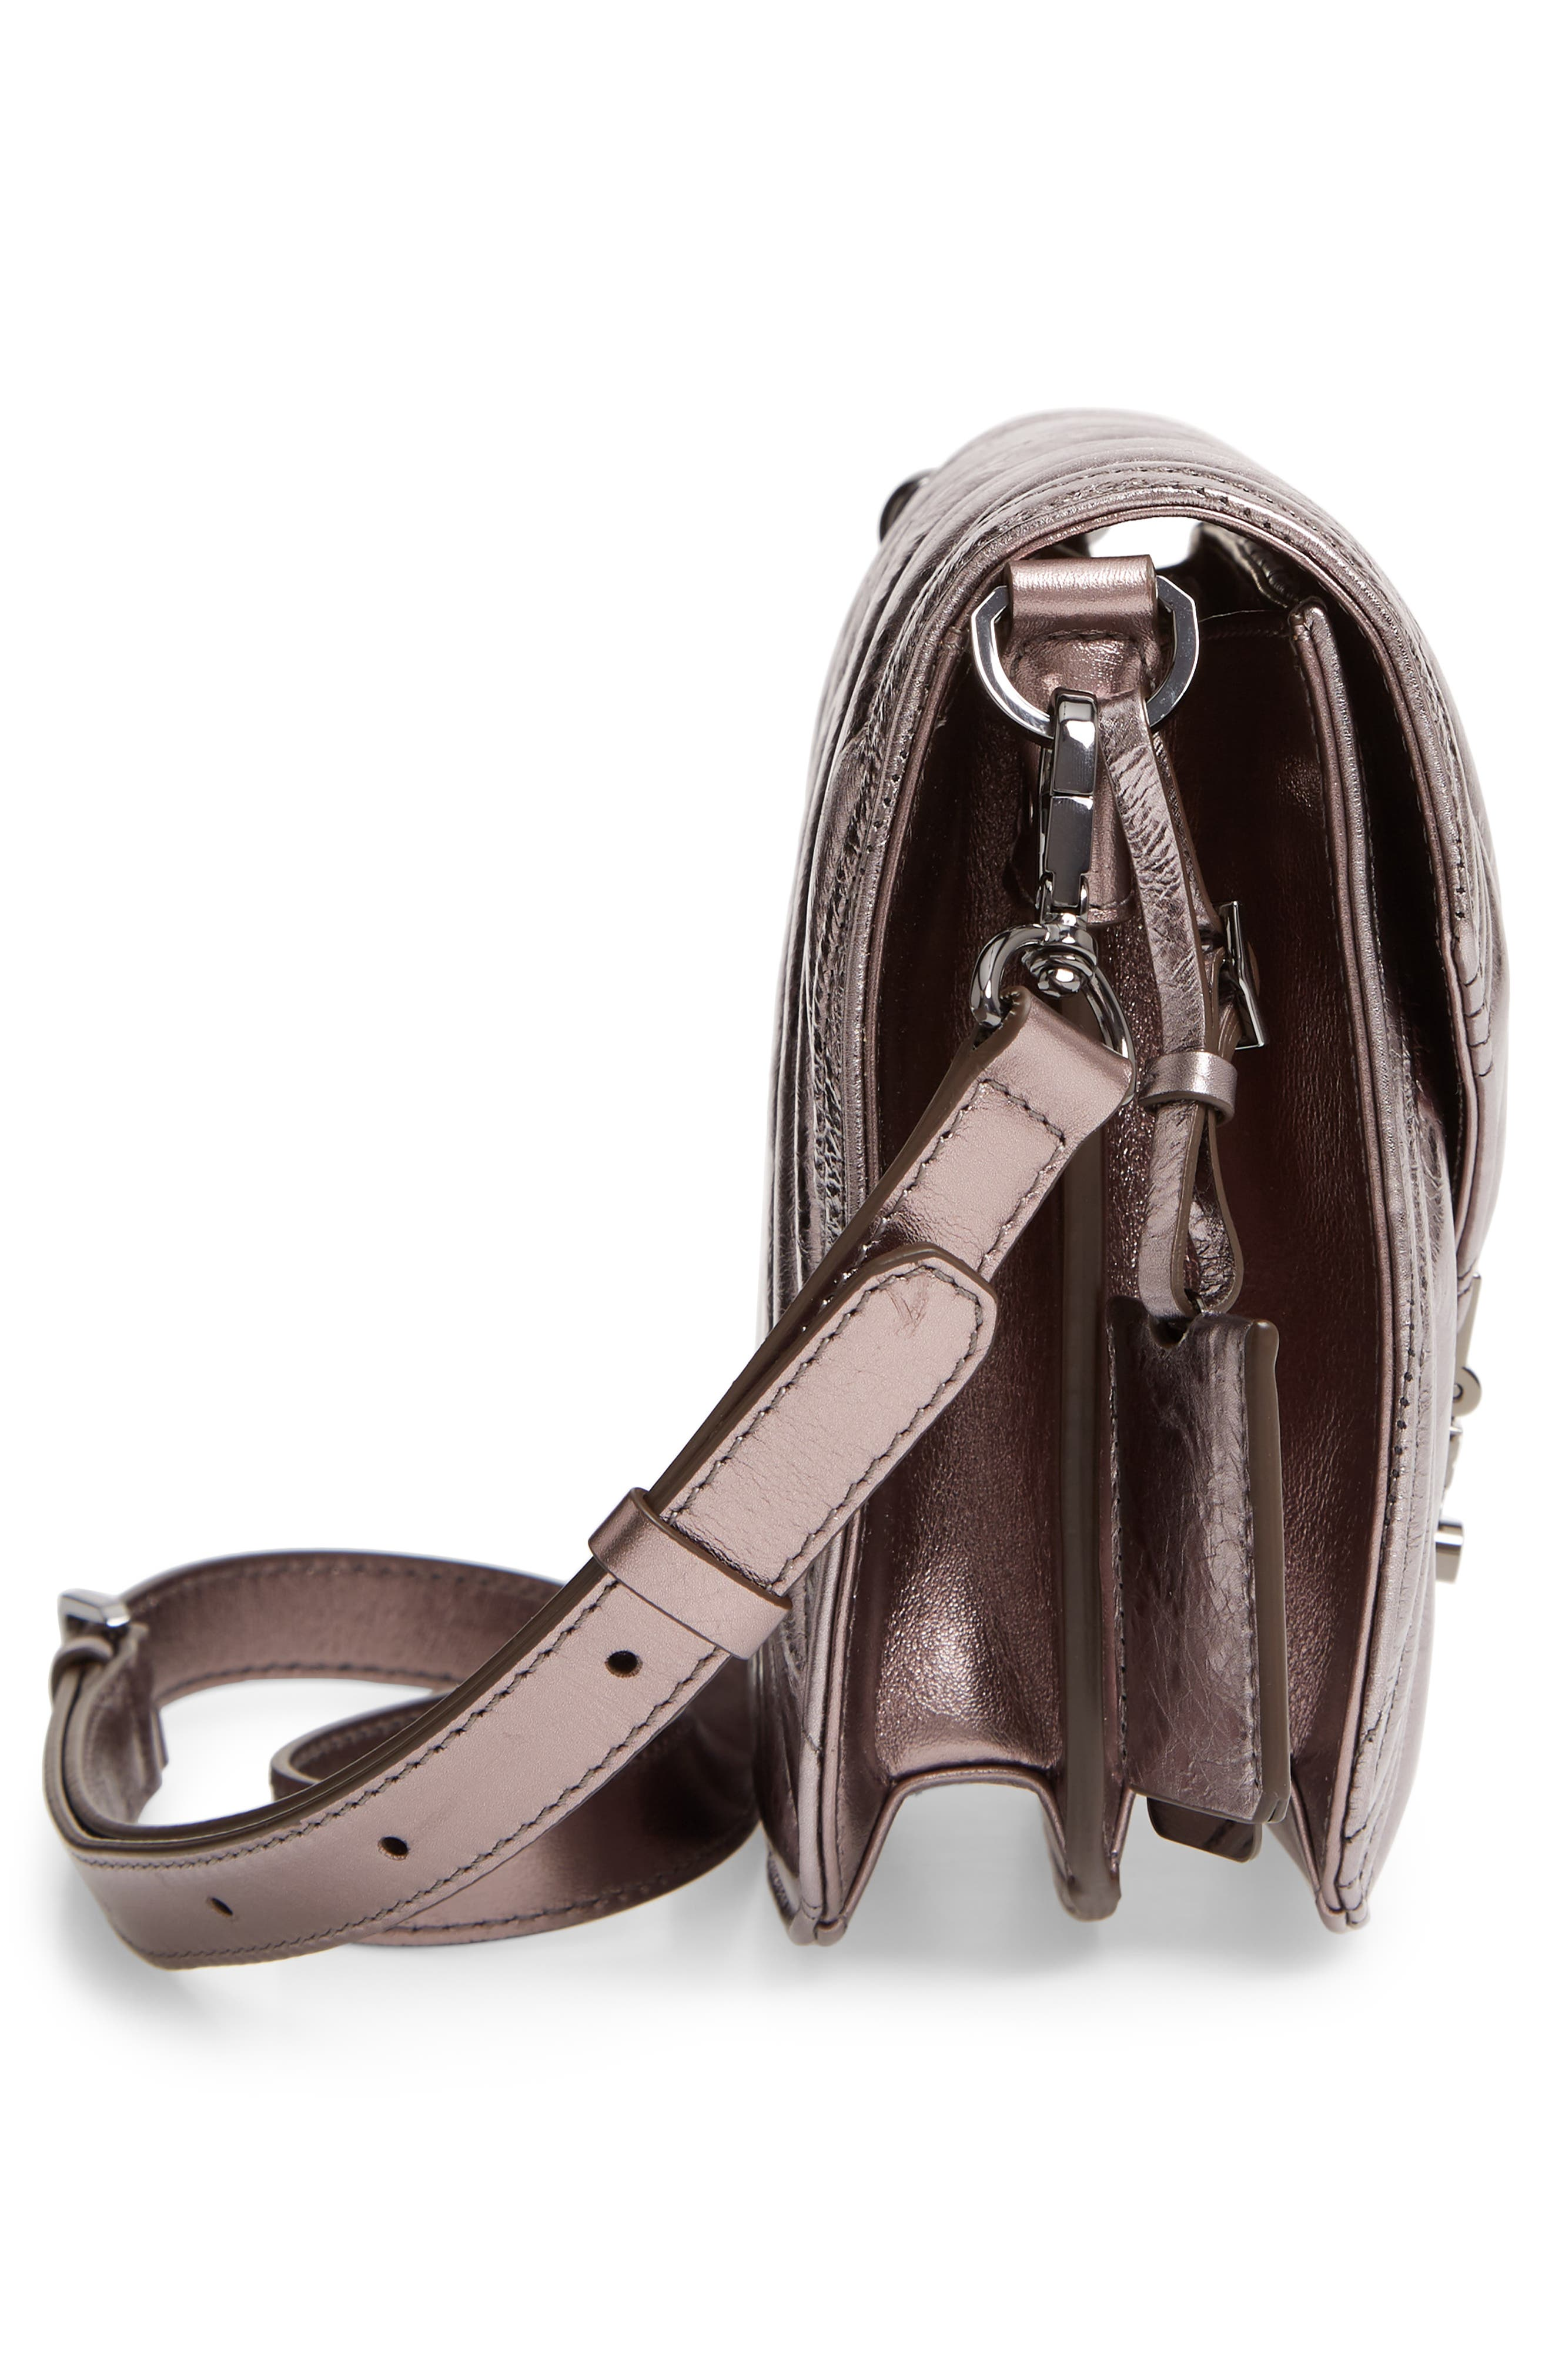 Patricia Quilted Metallic Leather Saddle Bag,                             Alternate thumbnail 5, color,                             040